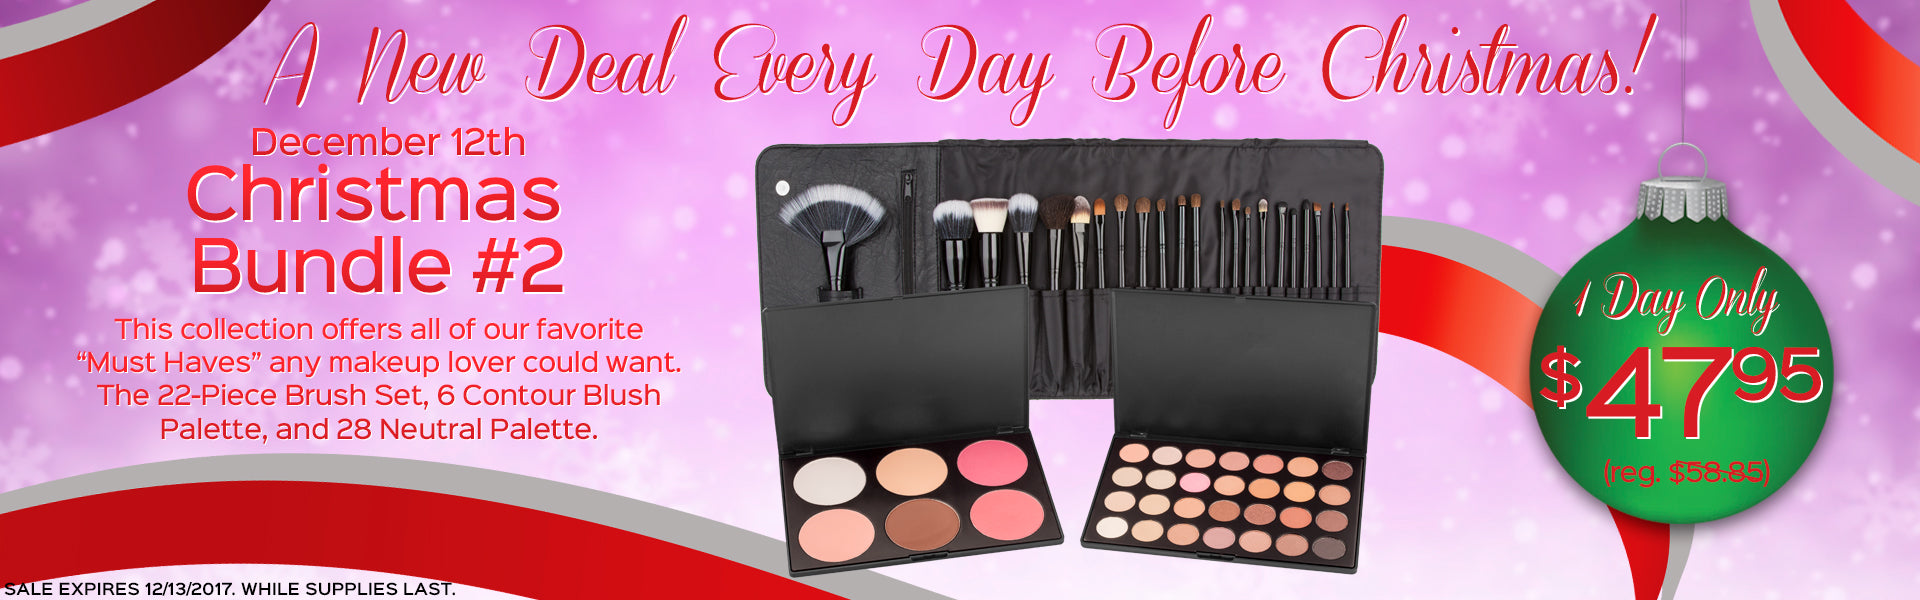 A New Deal Every Day Before Christmas Christmas Bundle #2 Now Only $47.95 - 1 Day Only!